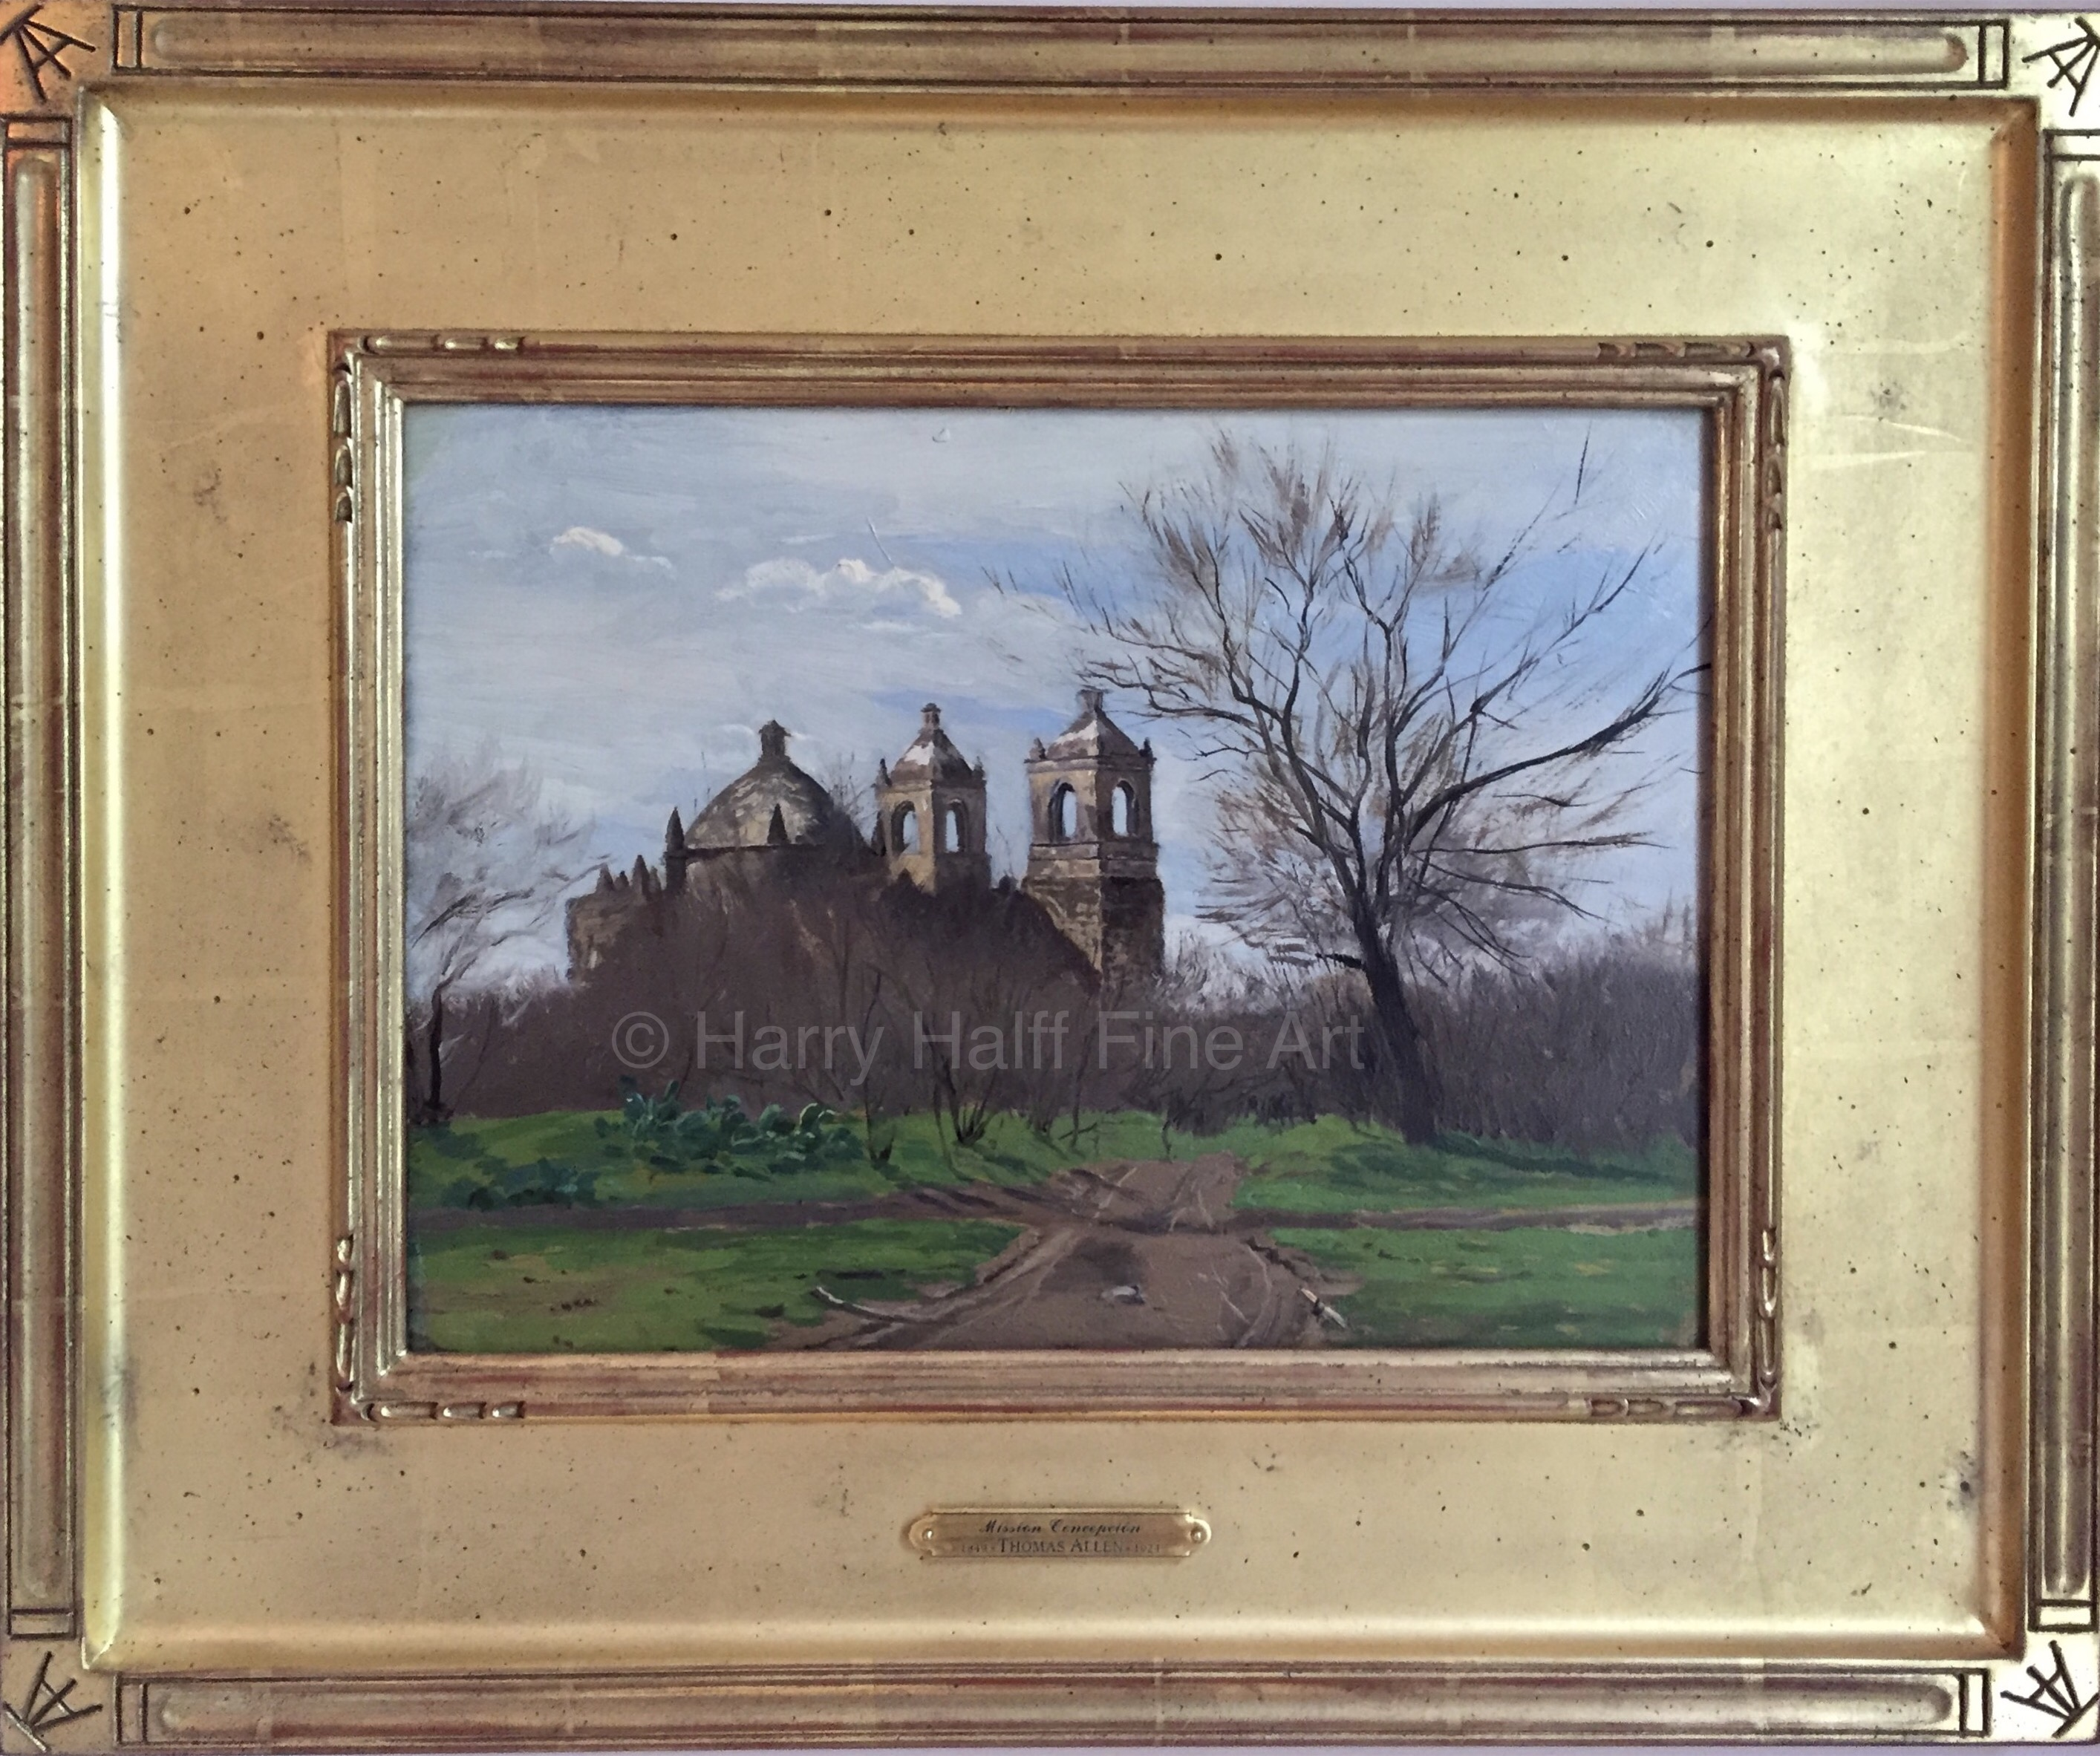 Thomas Allen's painting of Mission Concepcion in San Antonio, Texas from 1879.